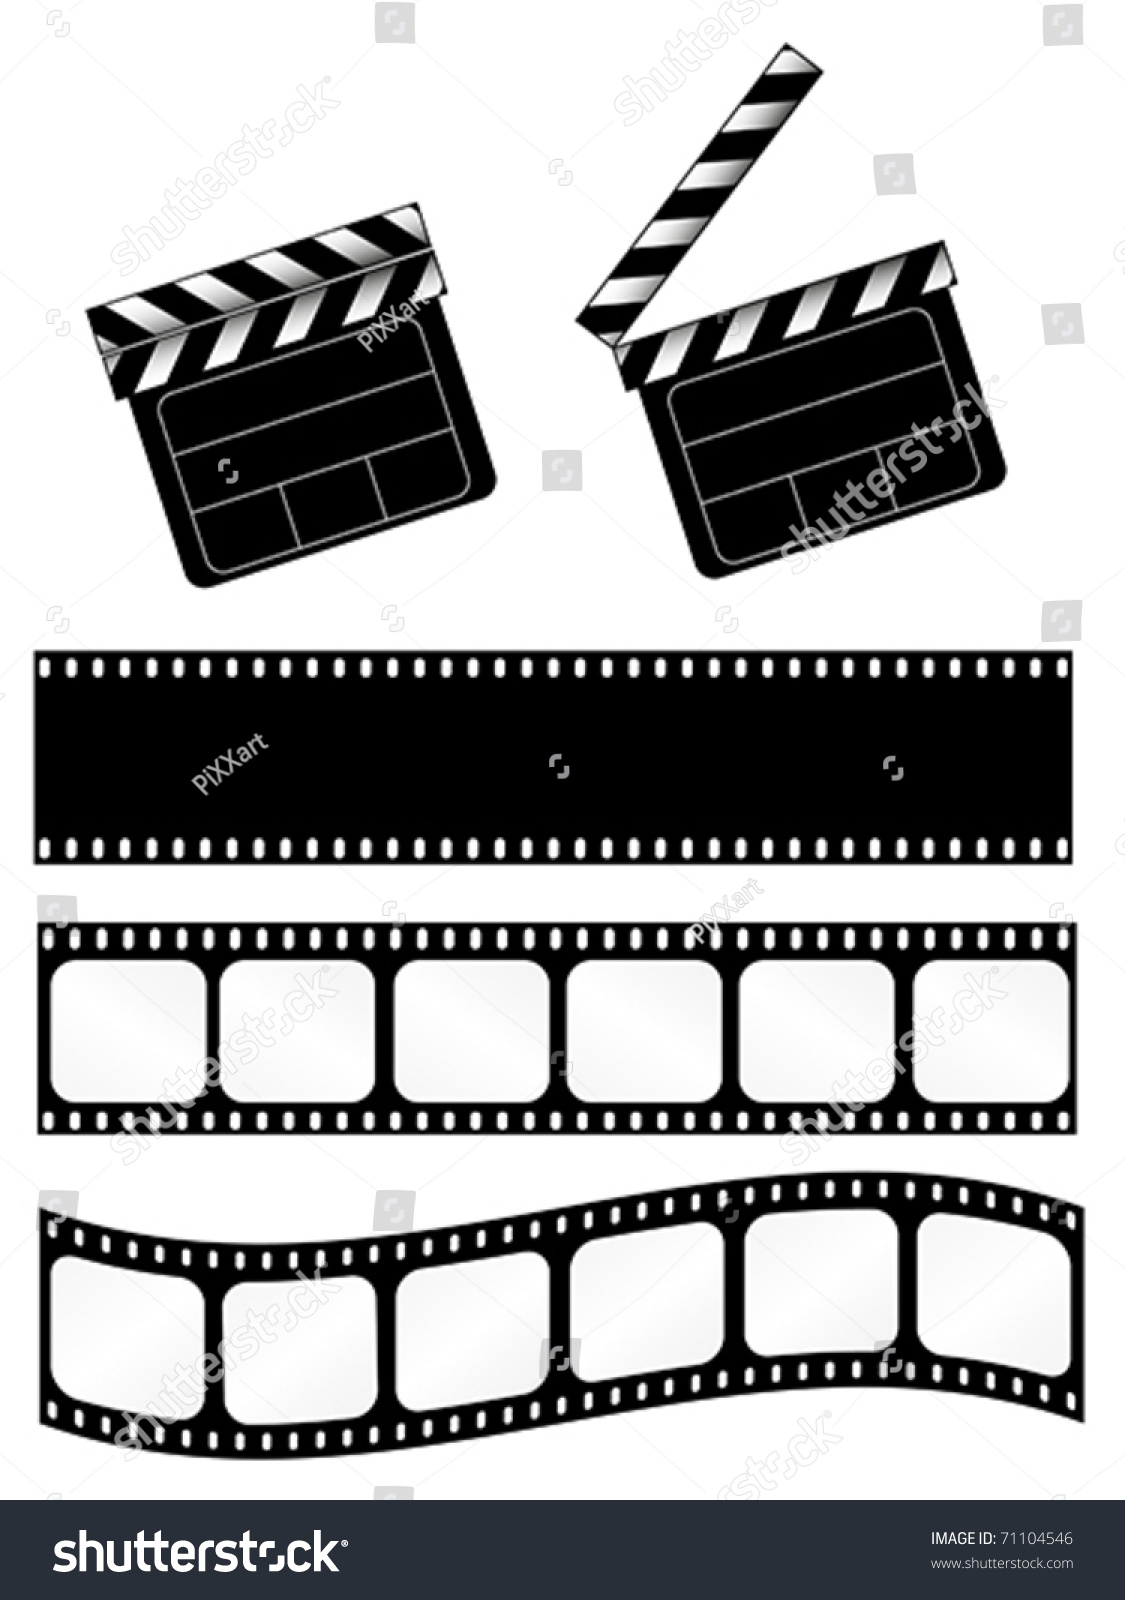 Film Strip: Movie Clapper With 3 Film Strips. Also Available As Jpeg